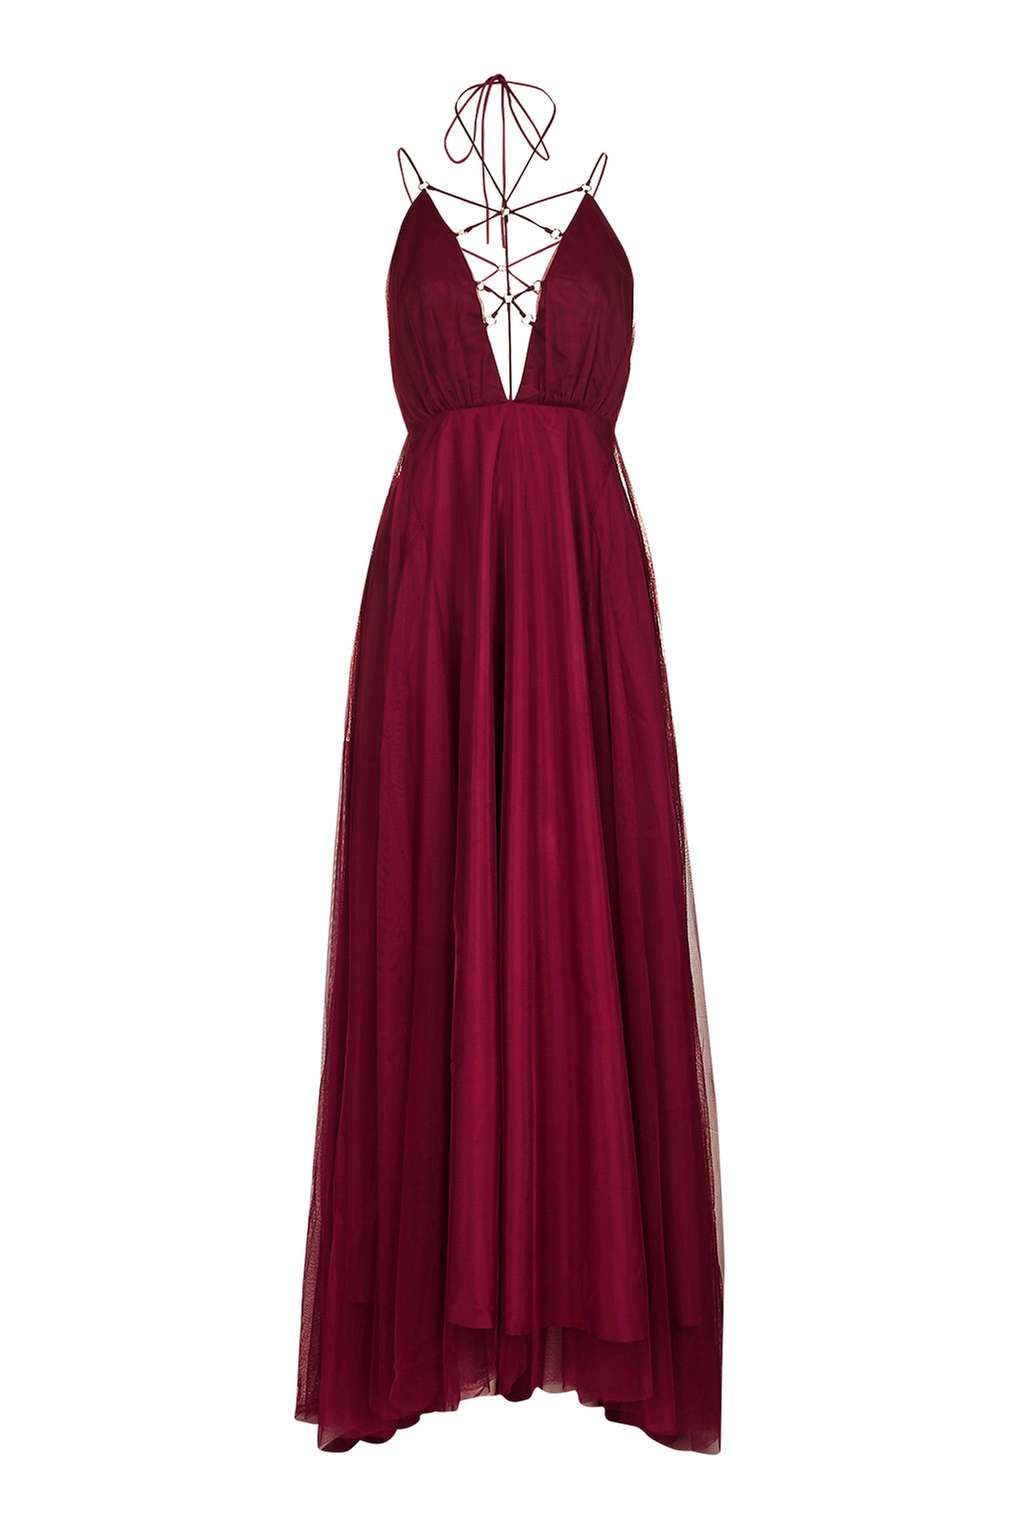 Tulle lace up maxi dress maxi dresses topshop and prom top shop maroon burgundy dress ombrellifo Image collections